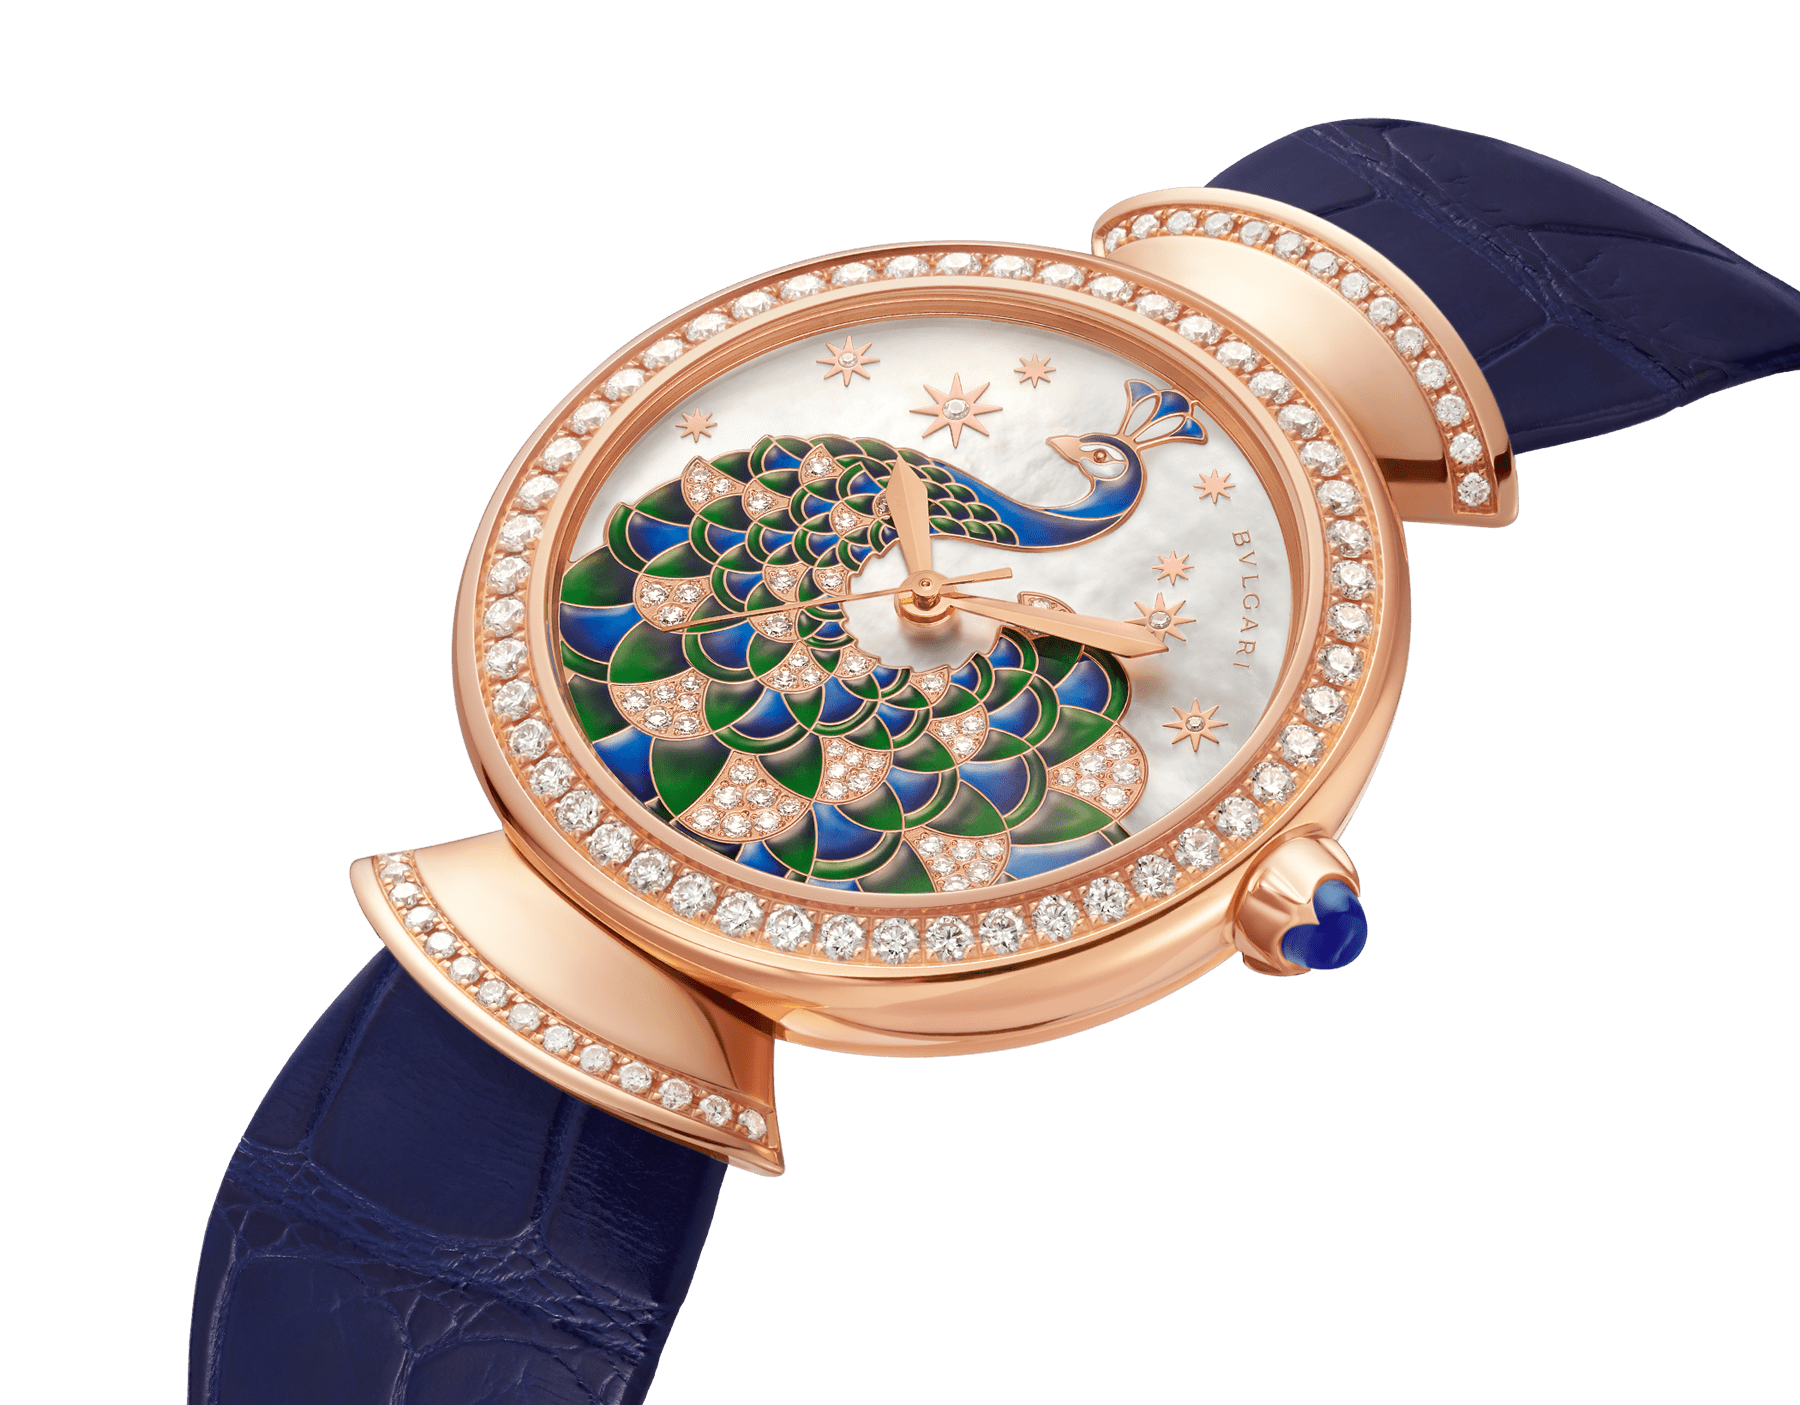 DIVAS' DREAM watch with 18 kt rose gold case set with brilliant-cut diamonds, mother-of-pearl dial with hand-painted peacock set with diamonds and dark blue alligator bracelet 102741 image 2